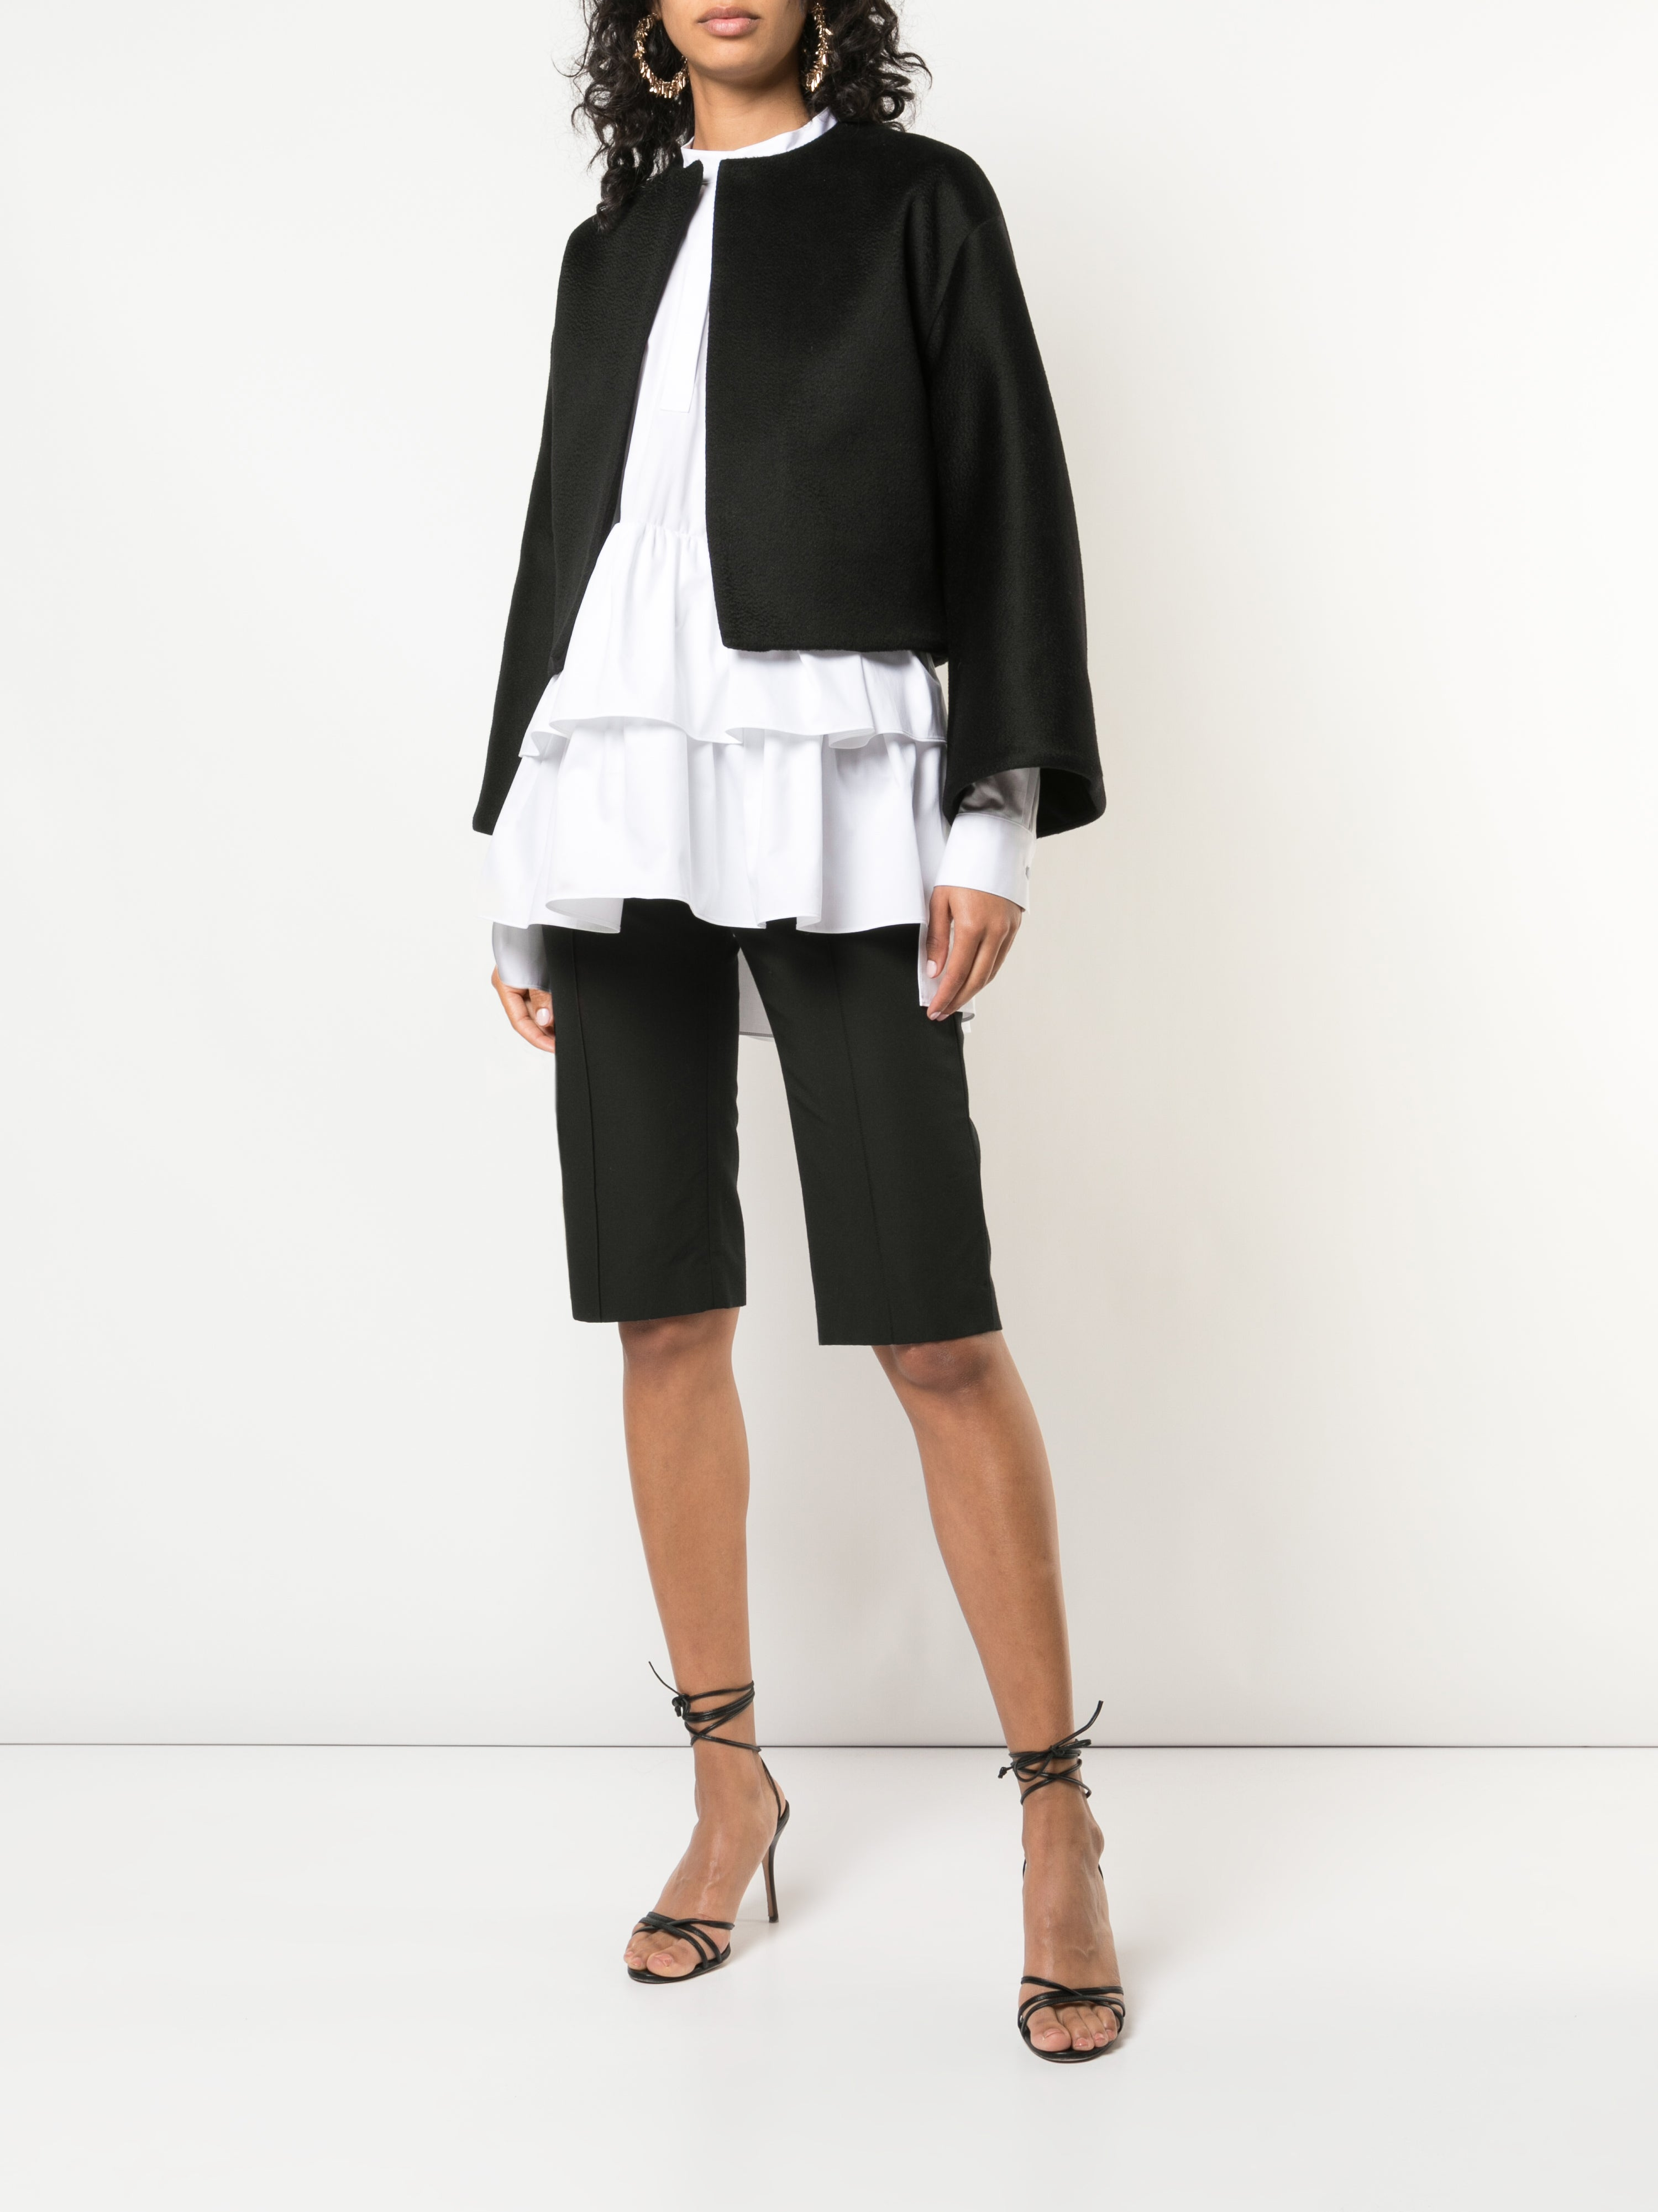 CROPPED JACKET IN ZIBELLINE CASHMERE